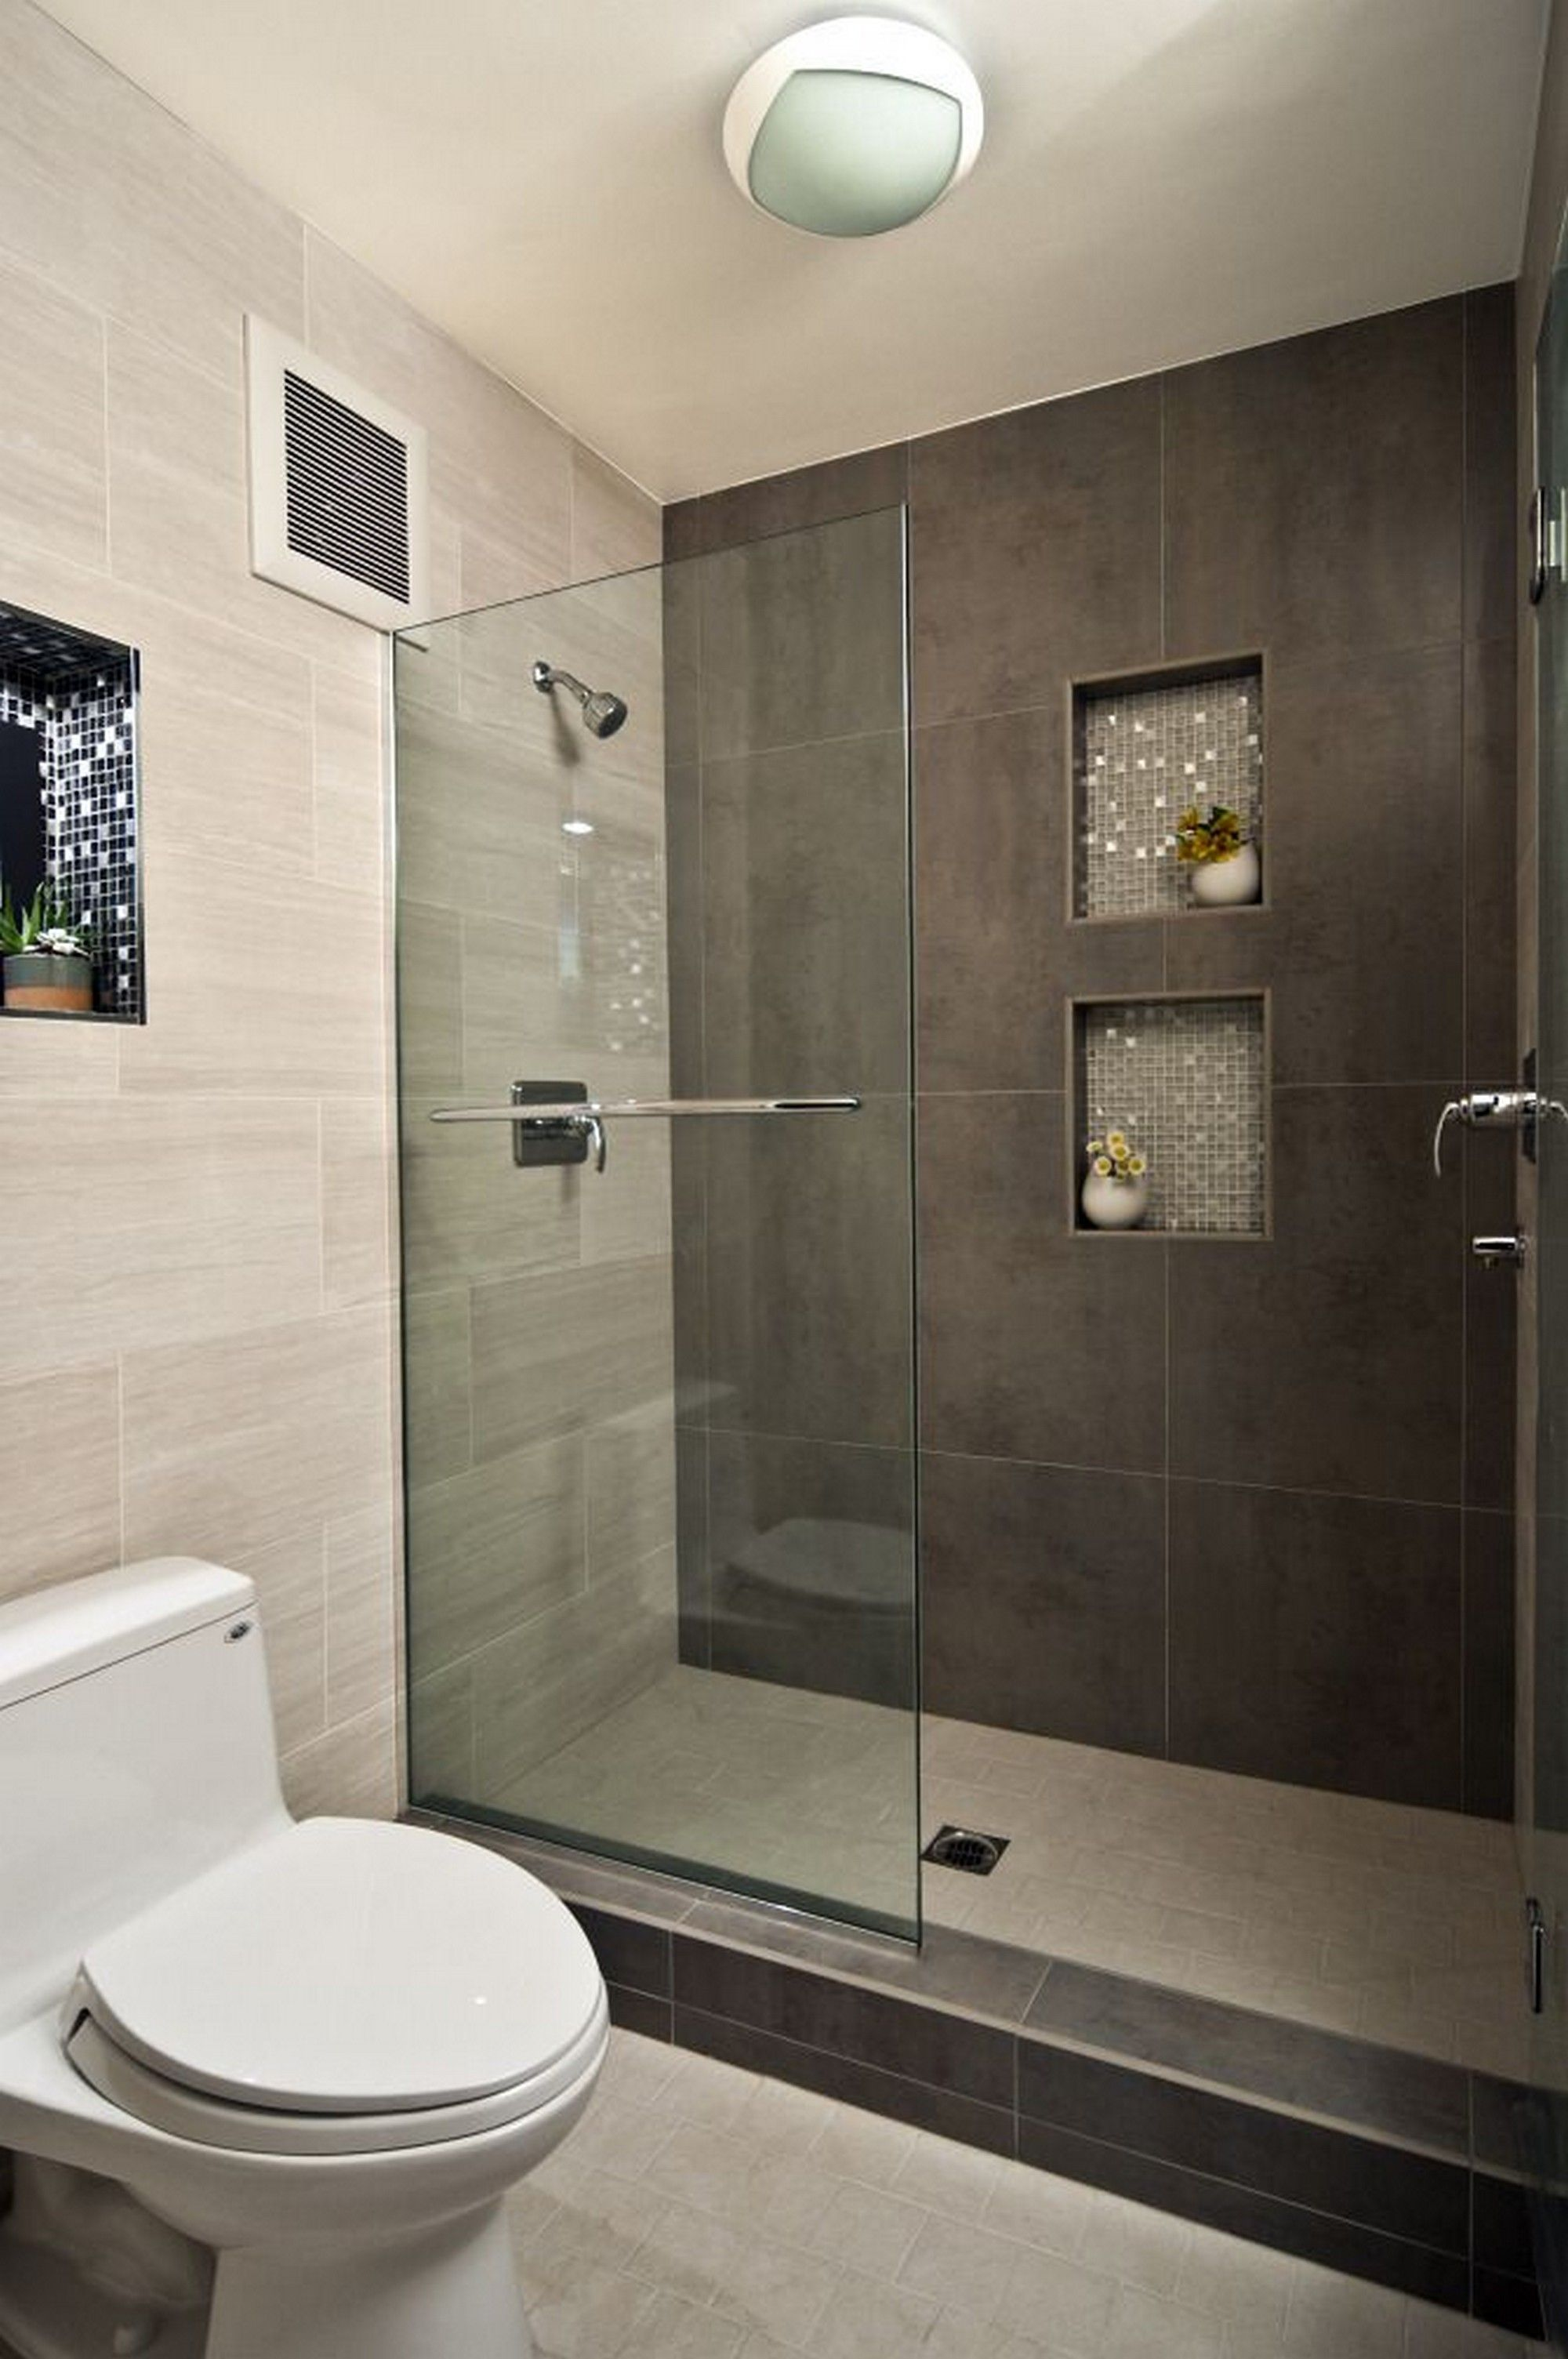 Modern bathroom design ideas with walk in shower small for A small bathroom design